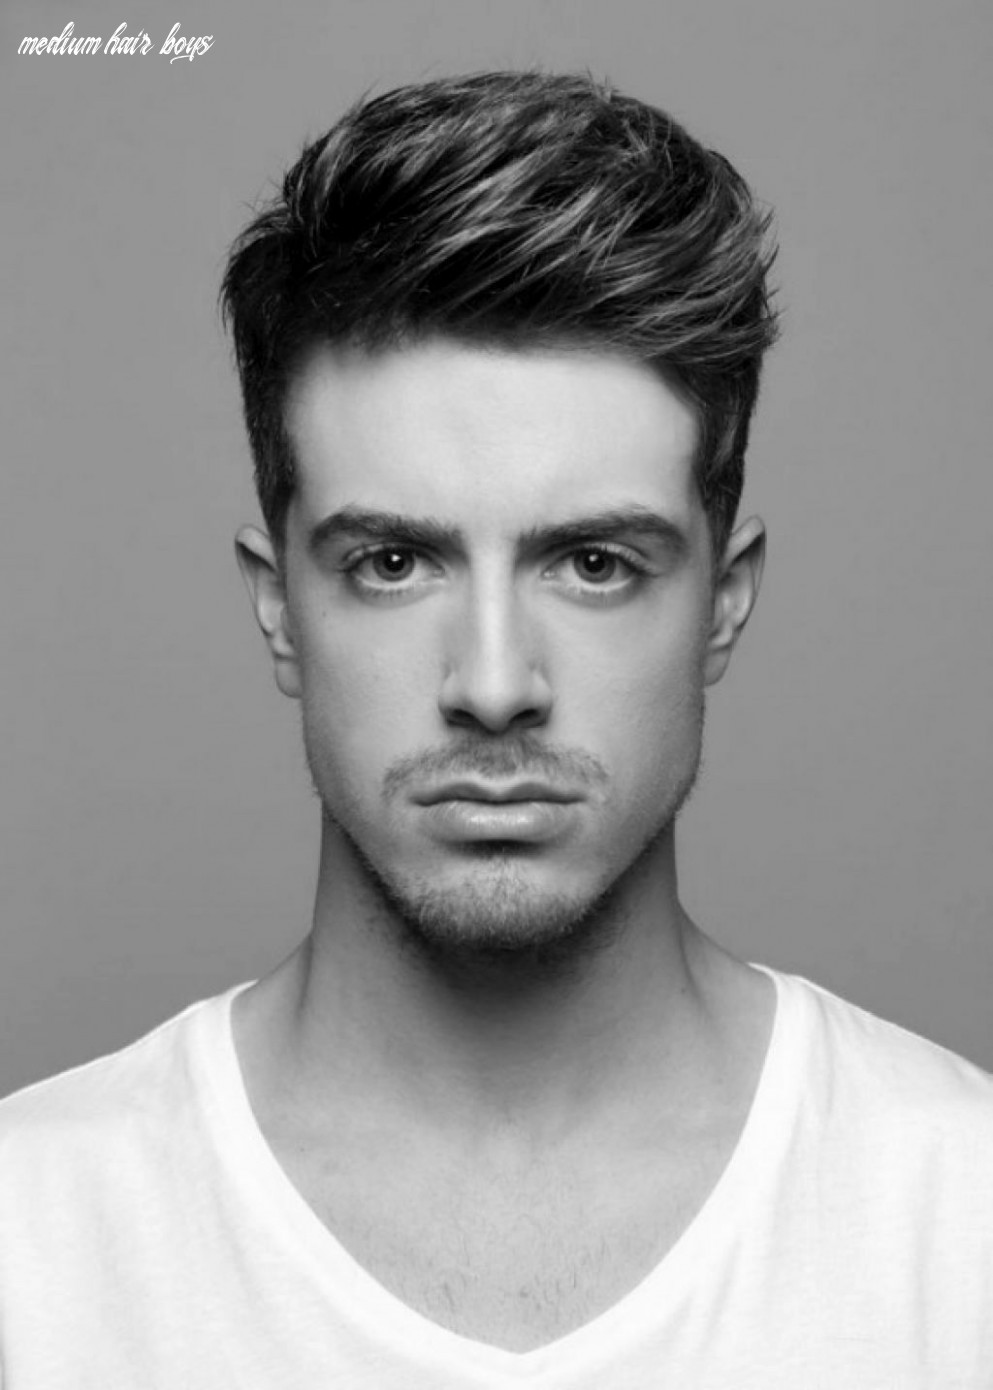 Awesome hairstyle men awesome hairstyles for guys with medium hair